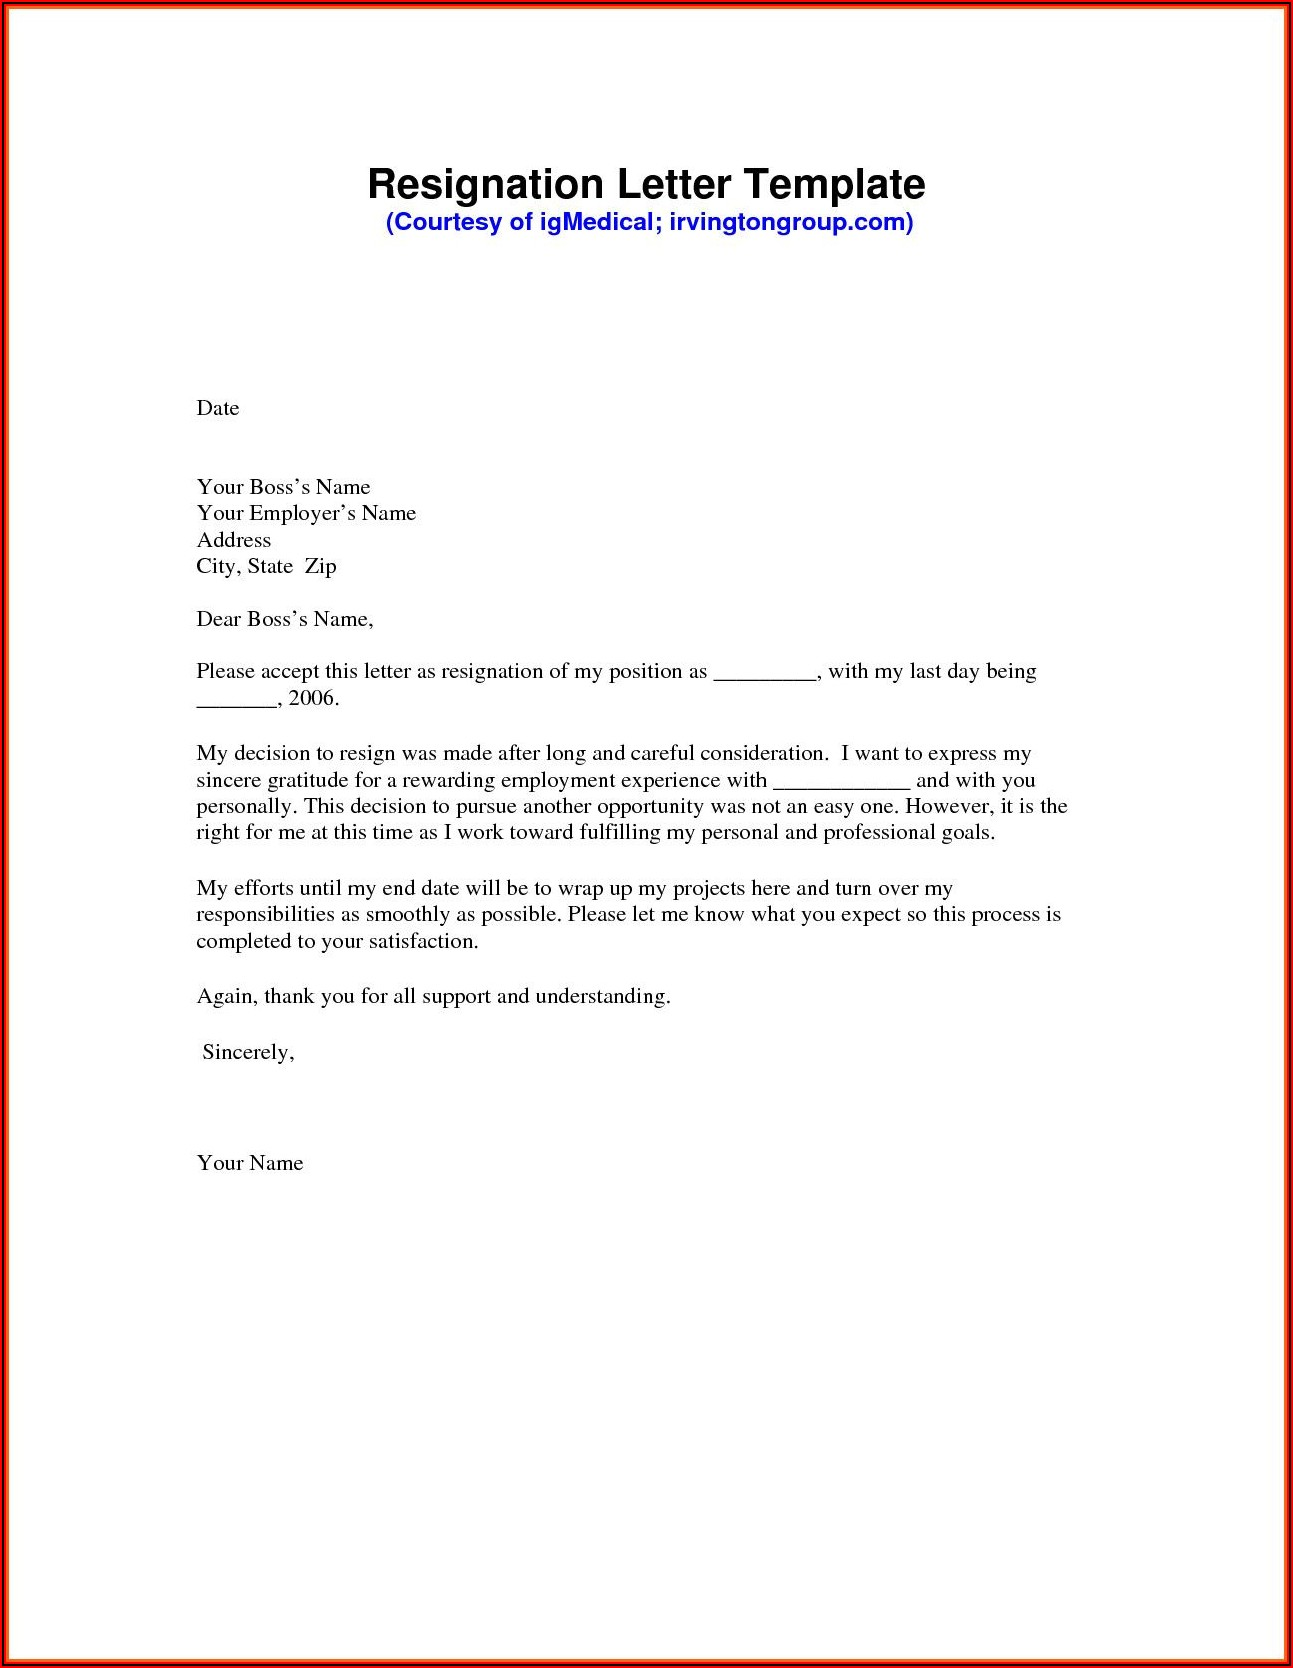 Free Template Resignation Letter Download